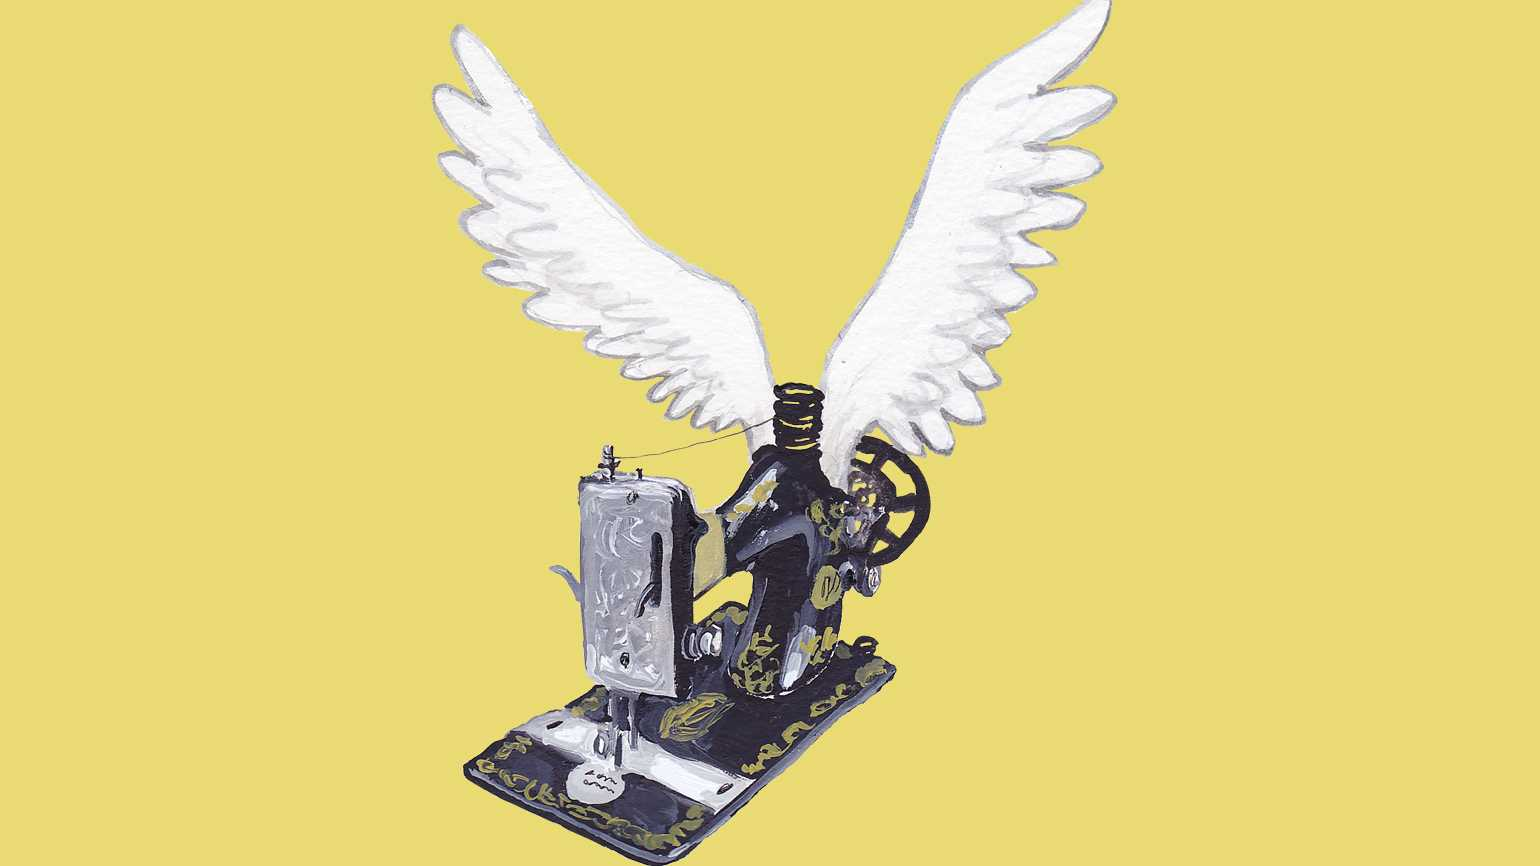 An artist's rendering of a vintage sewing machine with wings; Illustration by Dan Bransfield